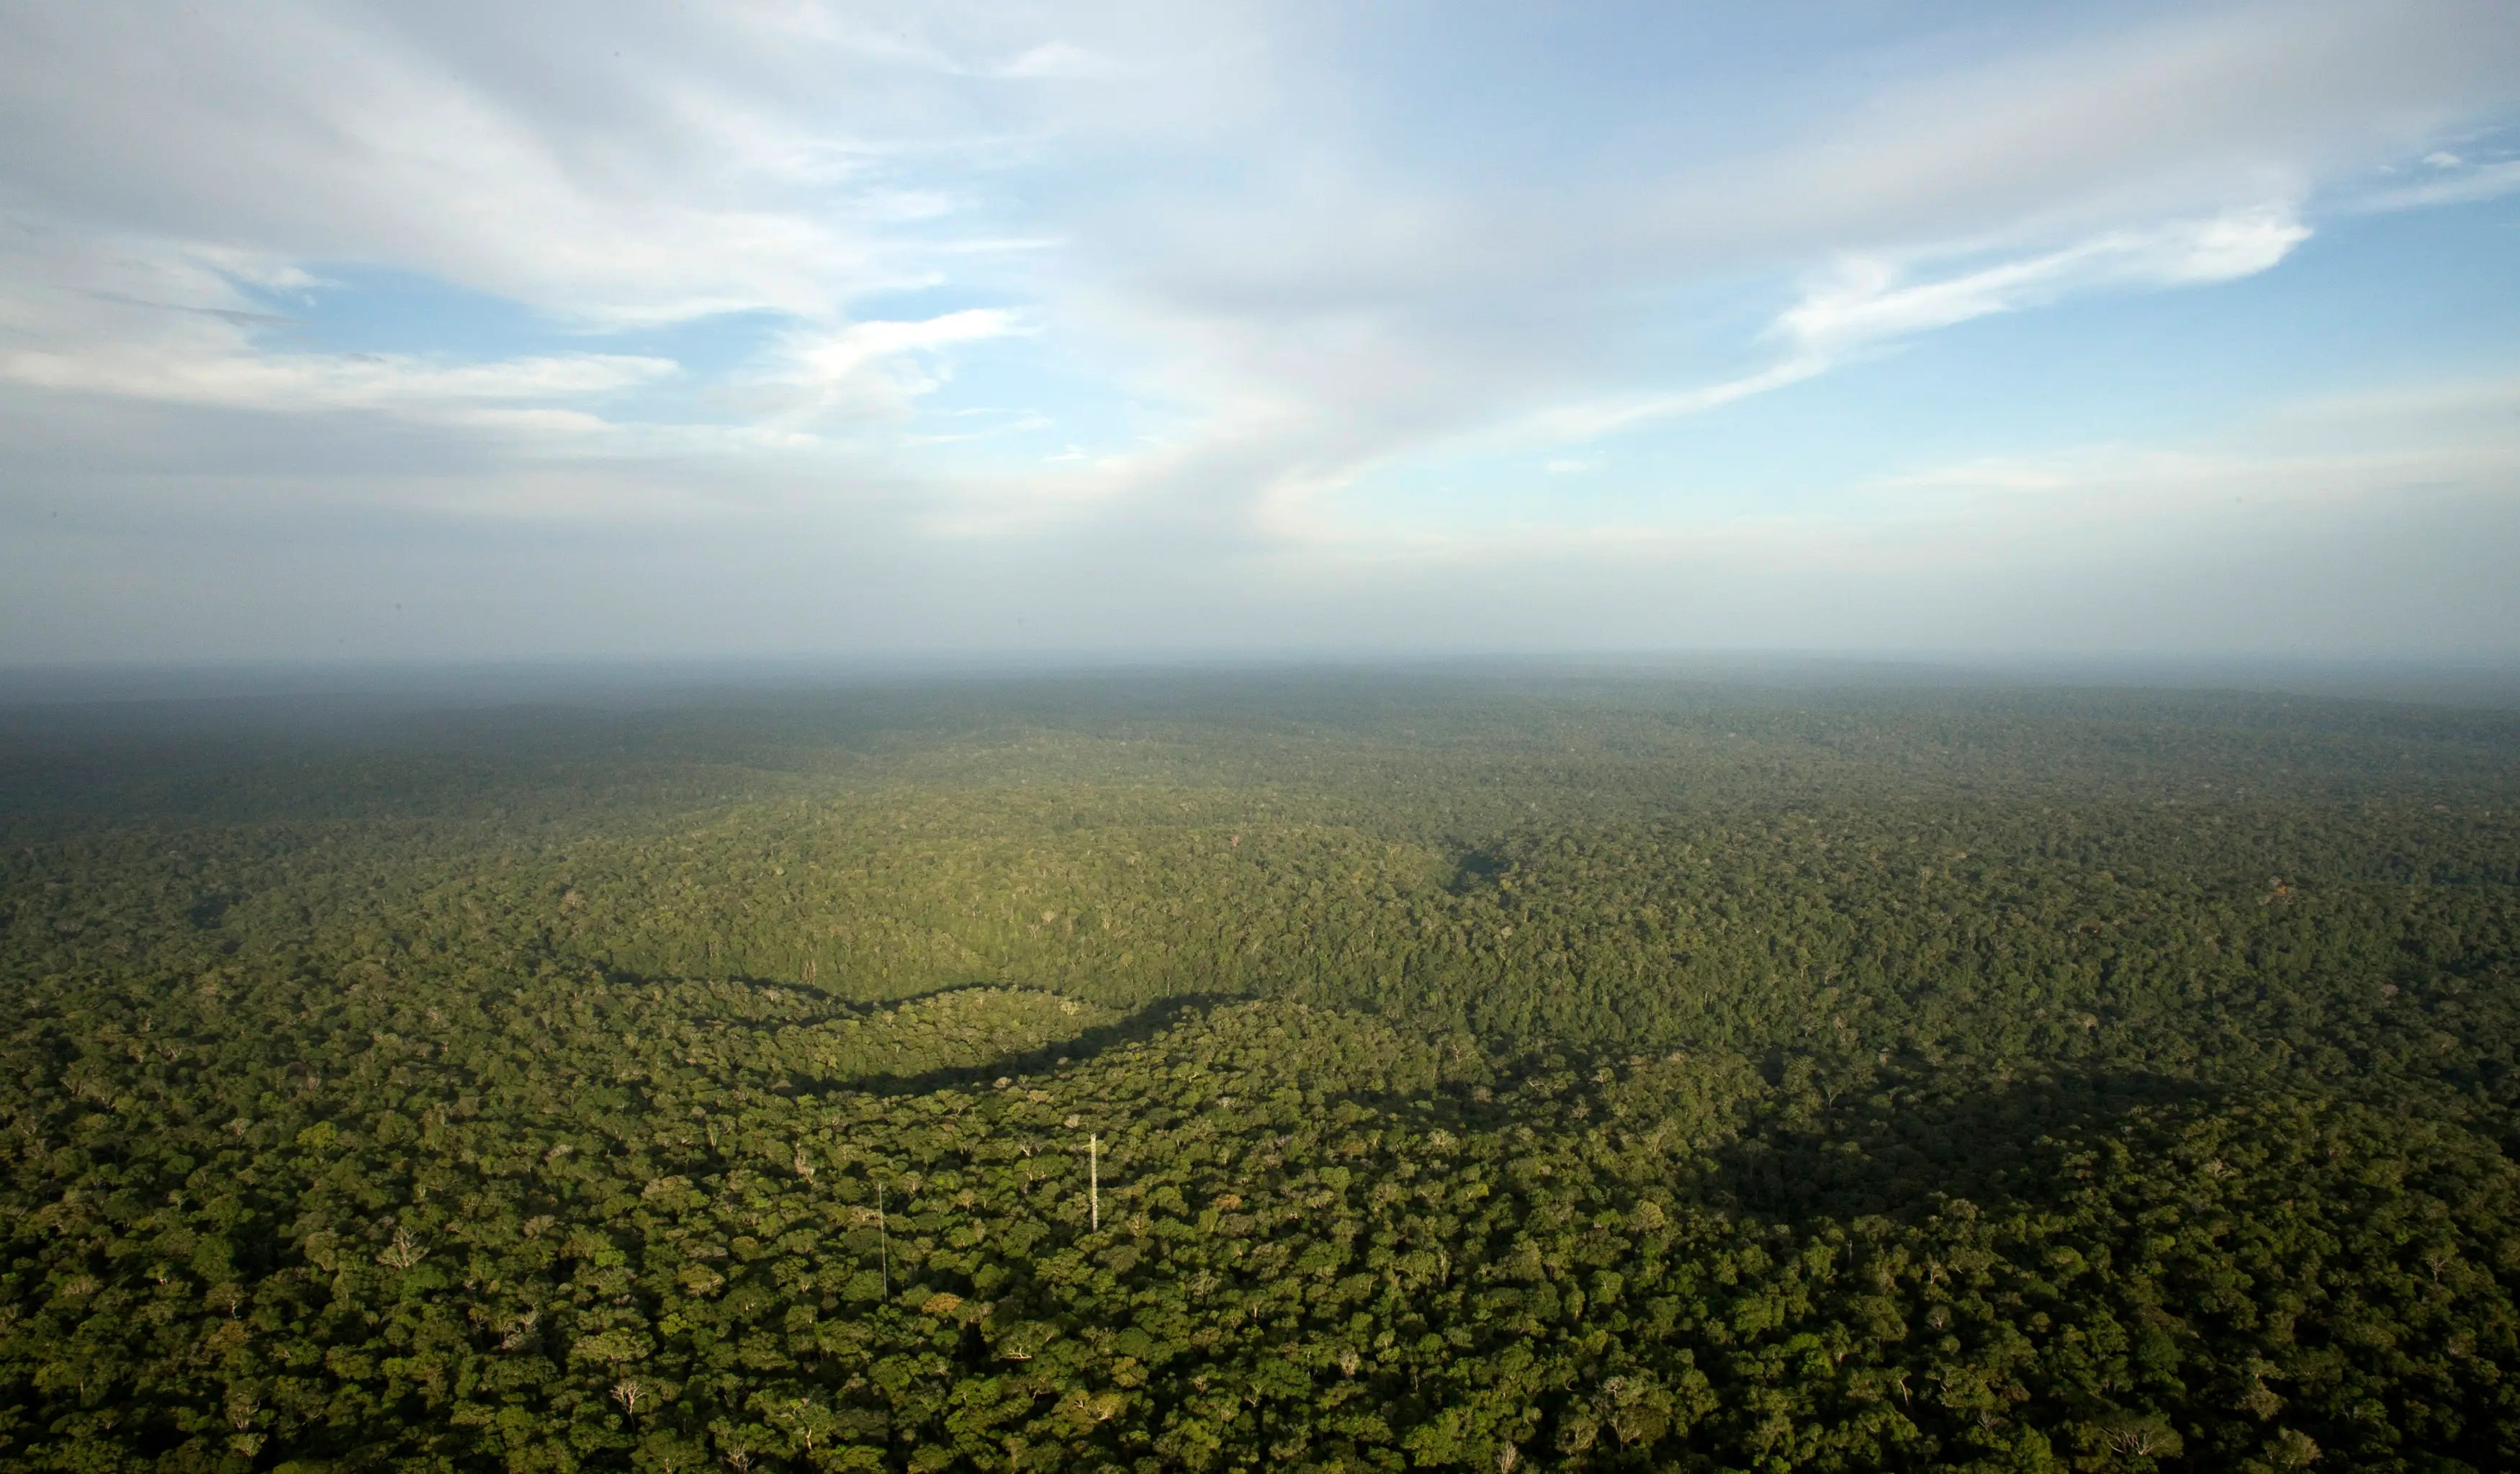 A view from the Amazon Tall Tower Observatory in Brazil.